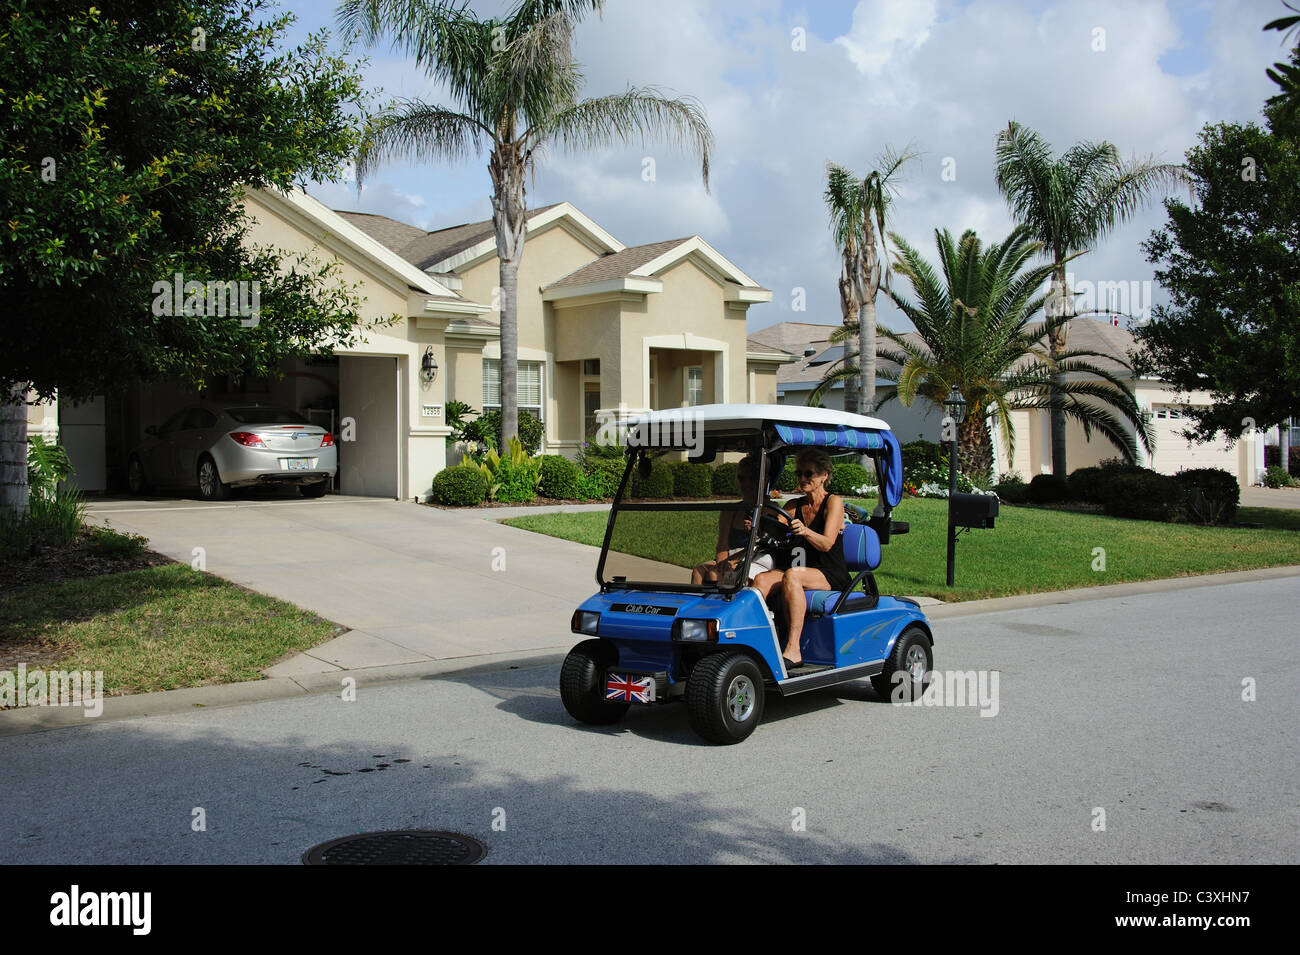 Clubcart being used on a Summerfield Florida residential estate USA - Stock Image